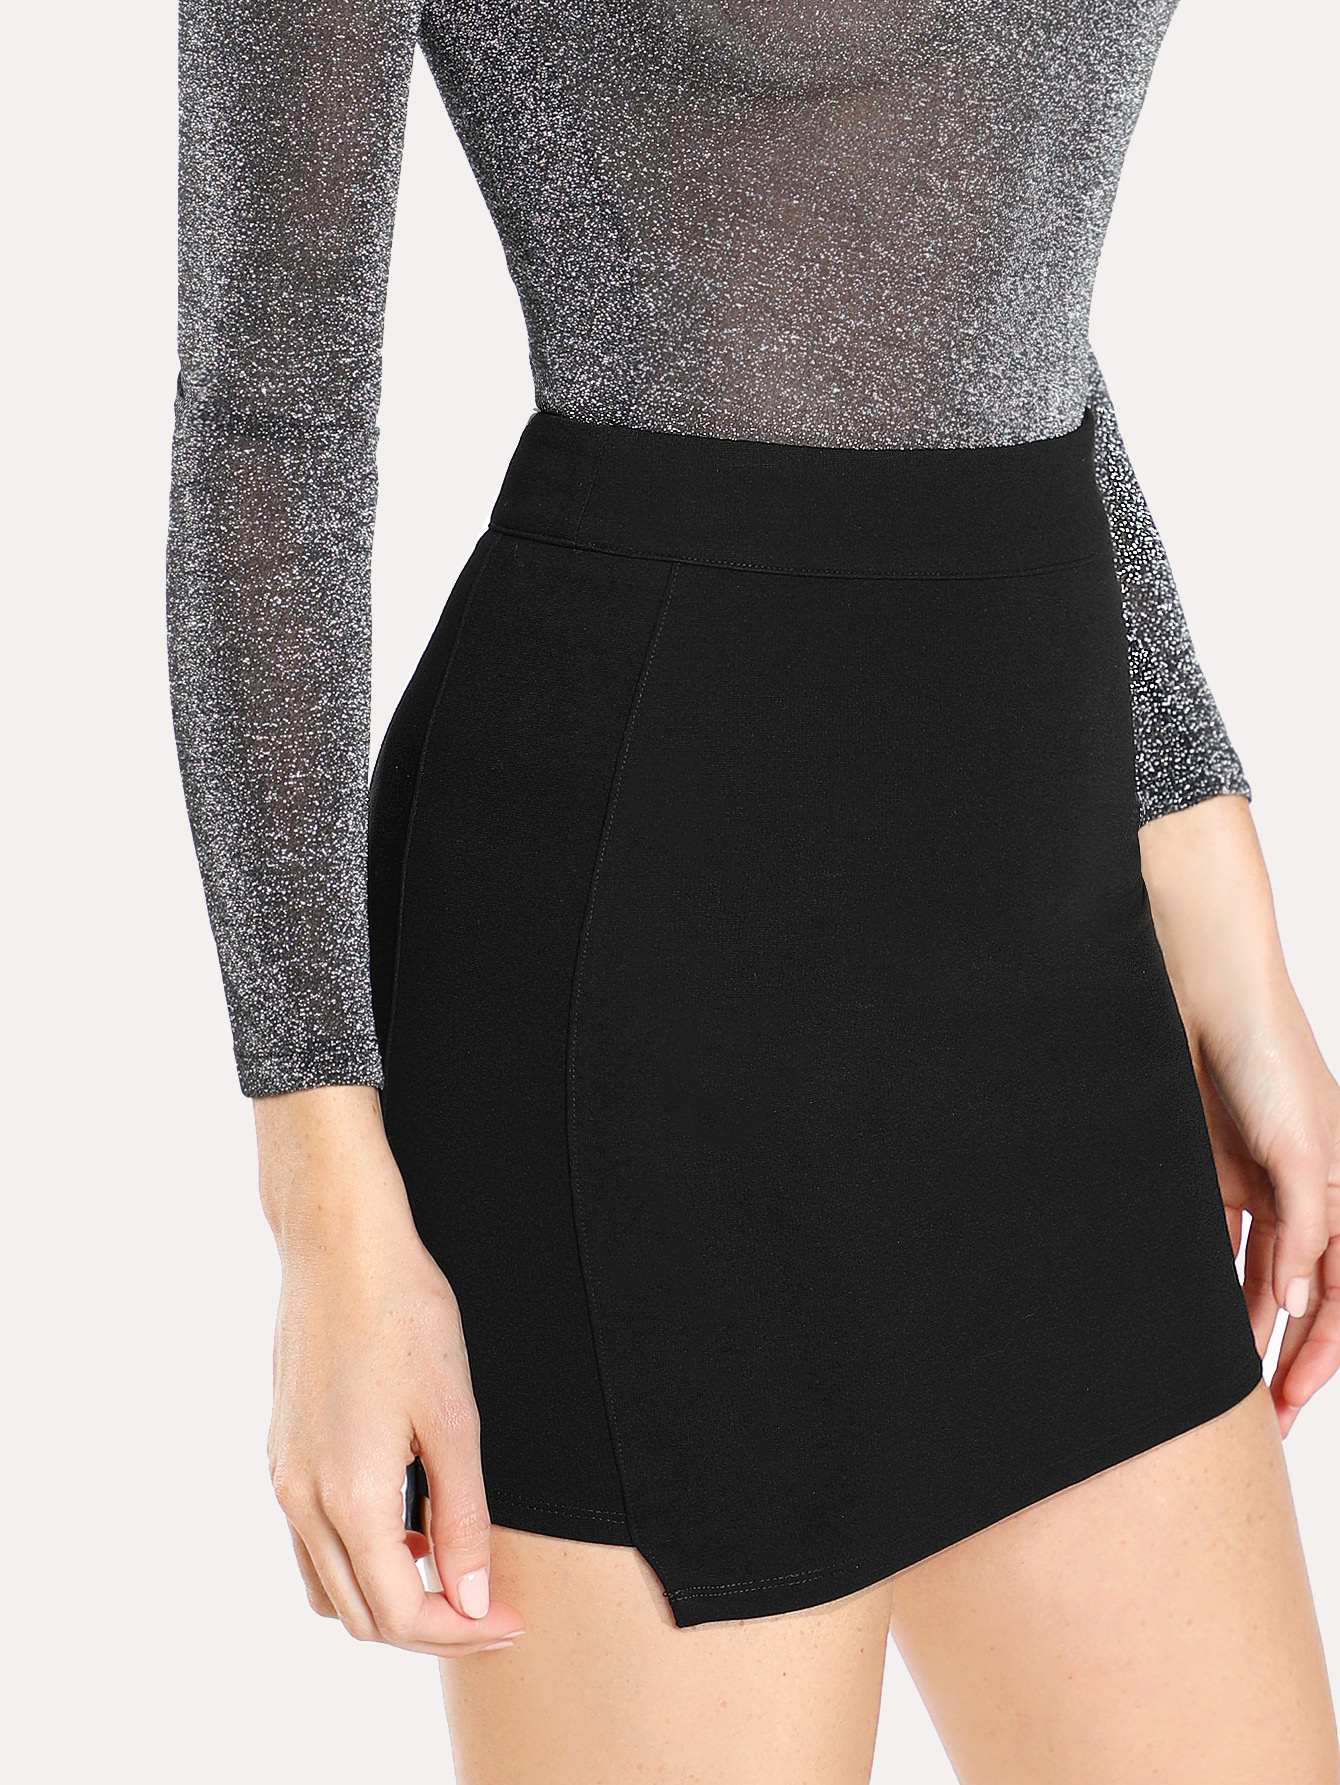 Solid Knit Bodycon Skirt жакет quelle ashley brooke by heine 71012